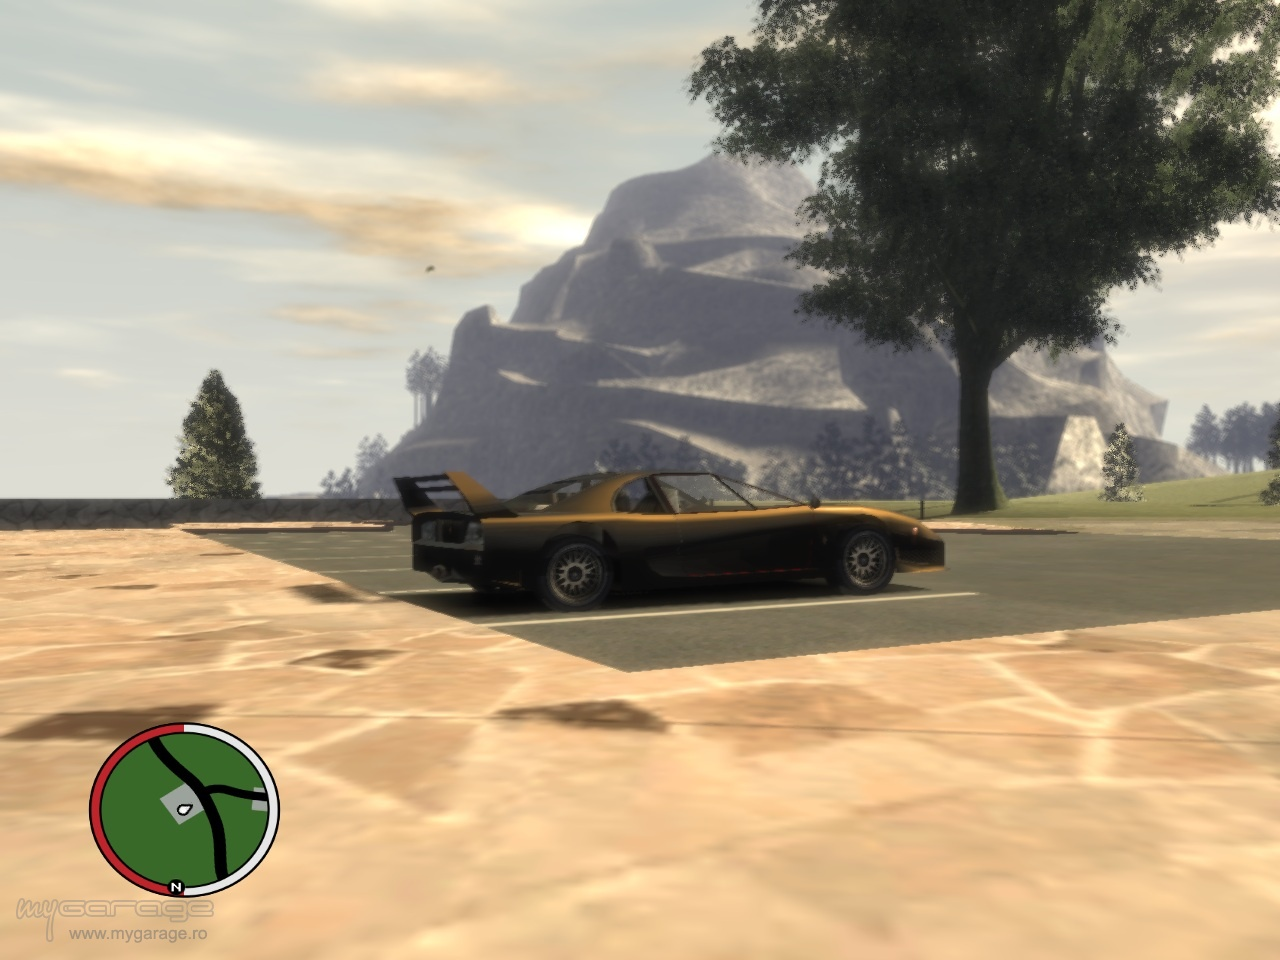 GTAIV Hud Mod - Page 4 - Other - GTAForums